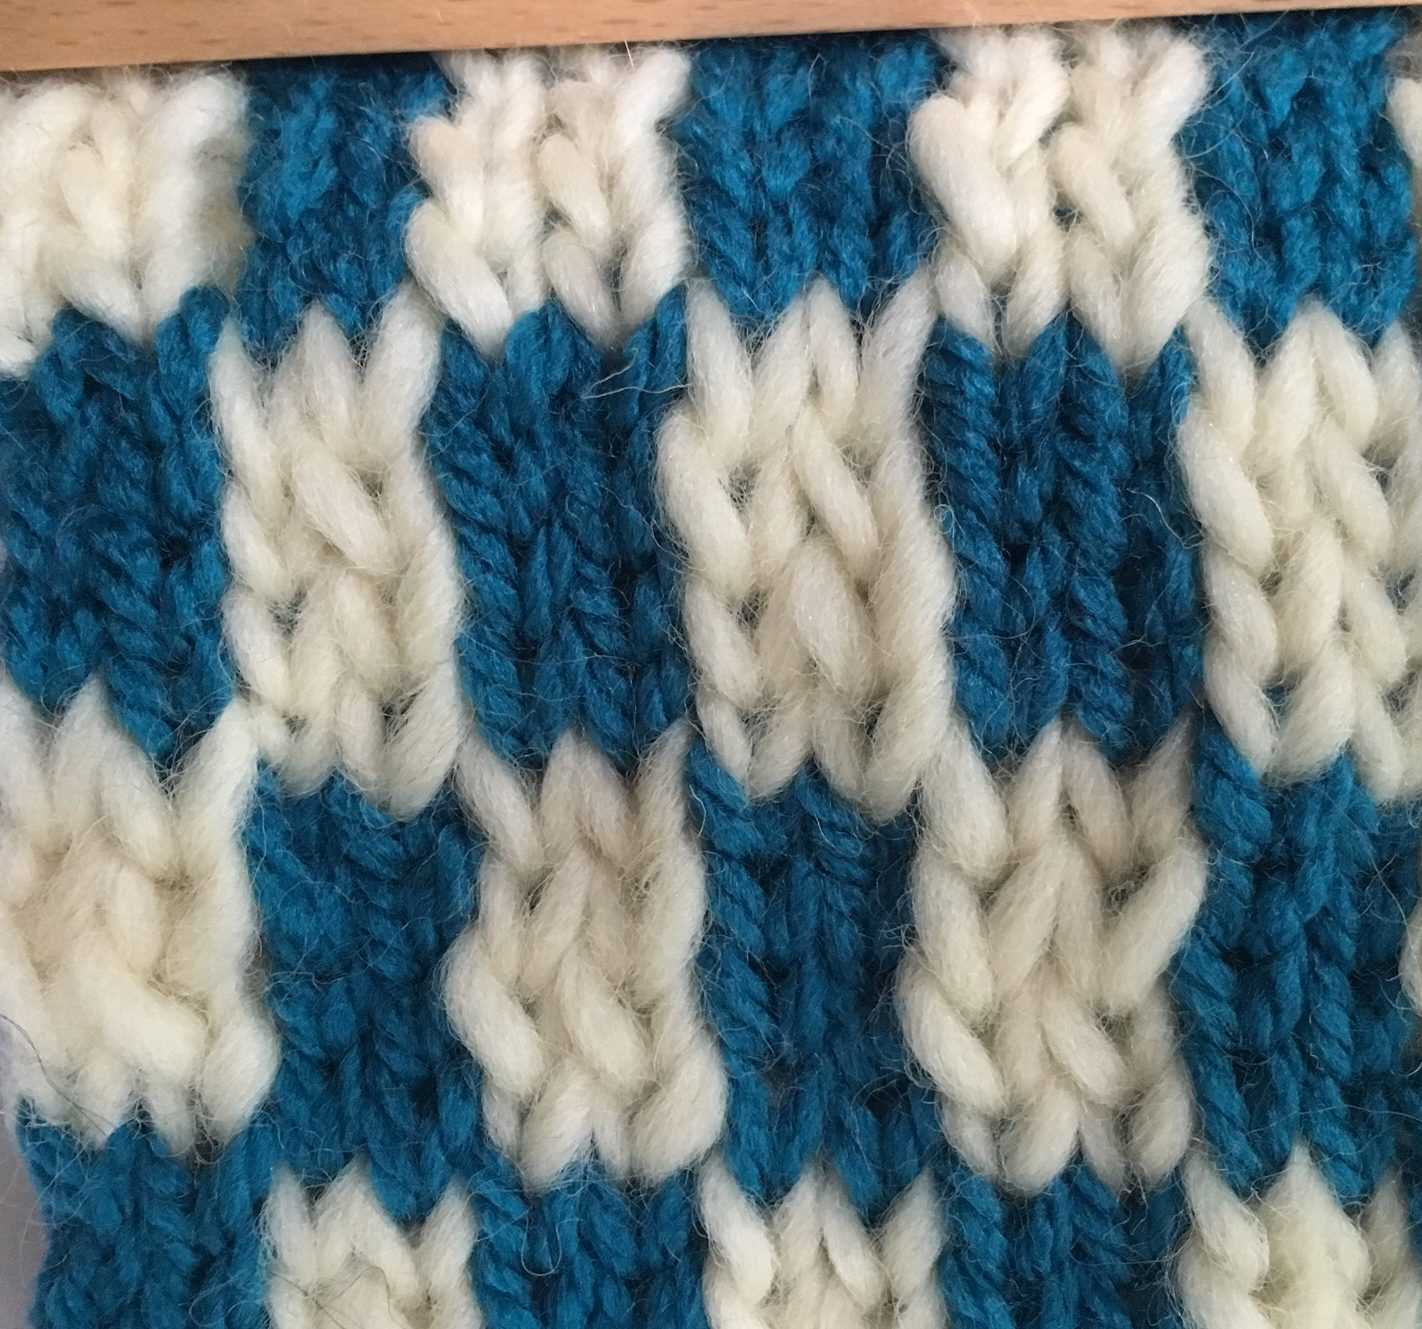 Vertical Striped Scarf Knitting Pattern Double Knit 101 Part Iv Color Changes Kb Looms Blog Kb Looms Blog